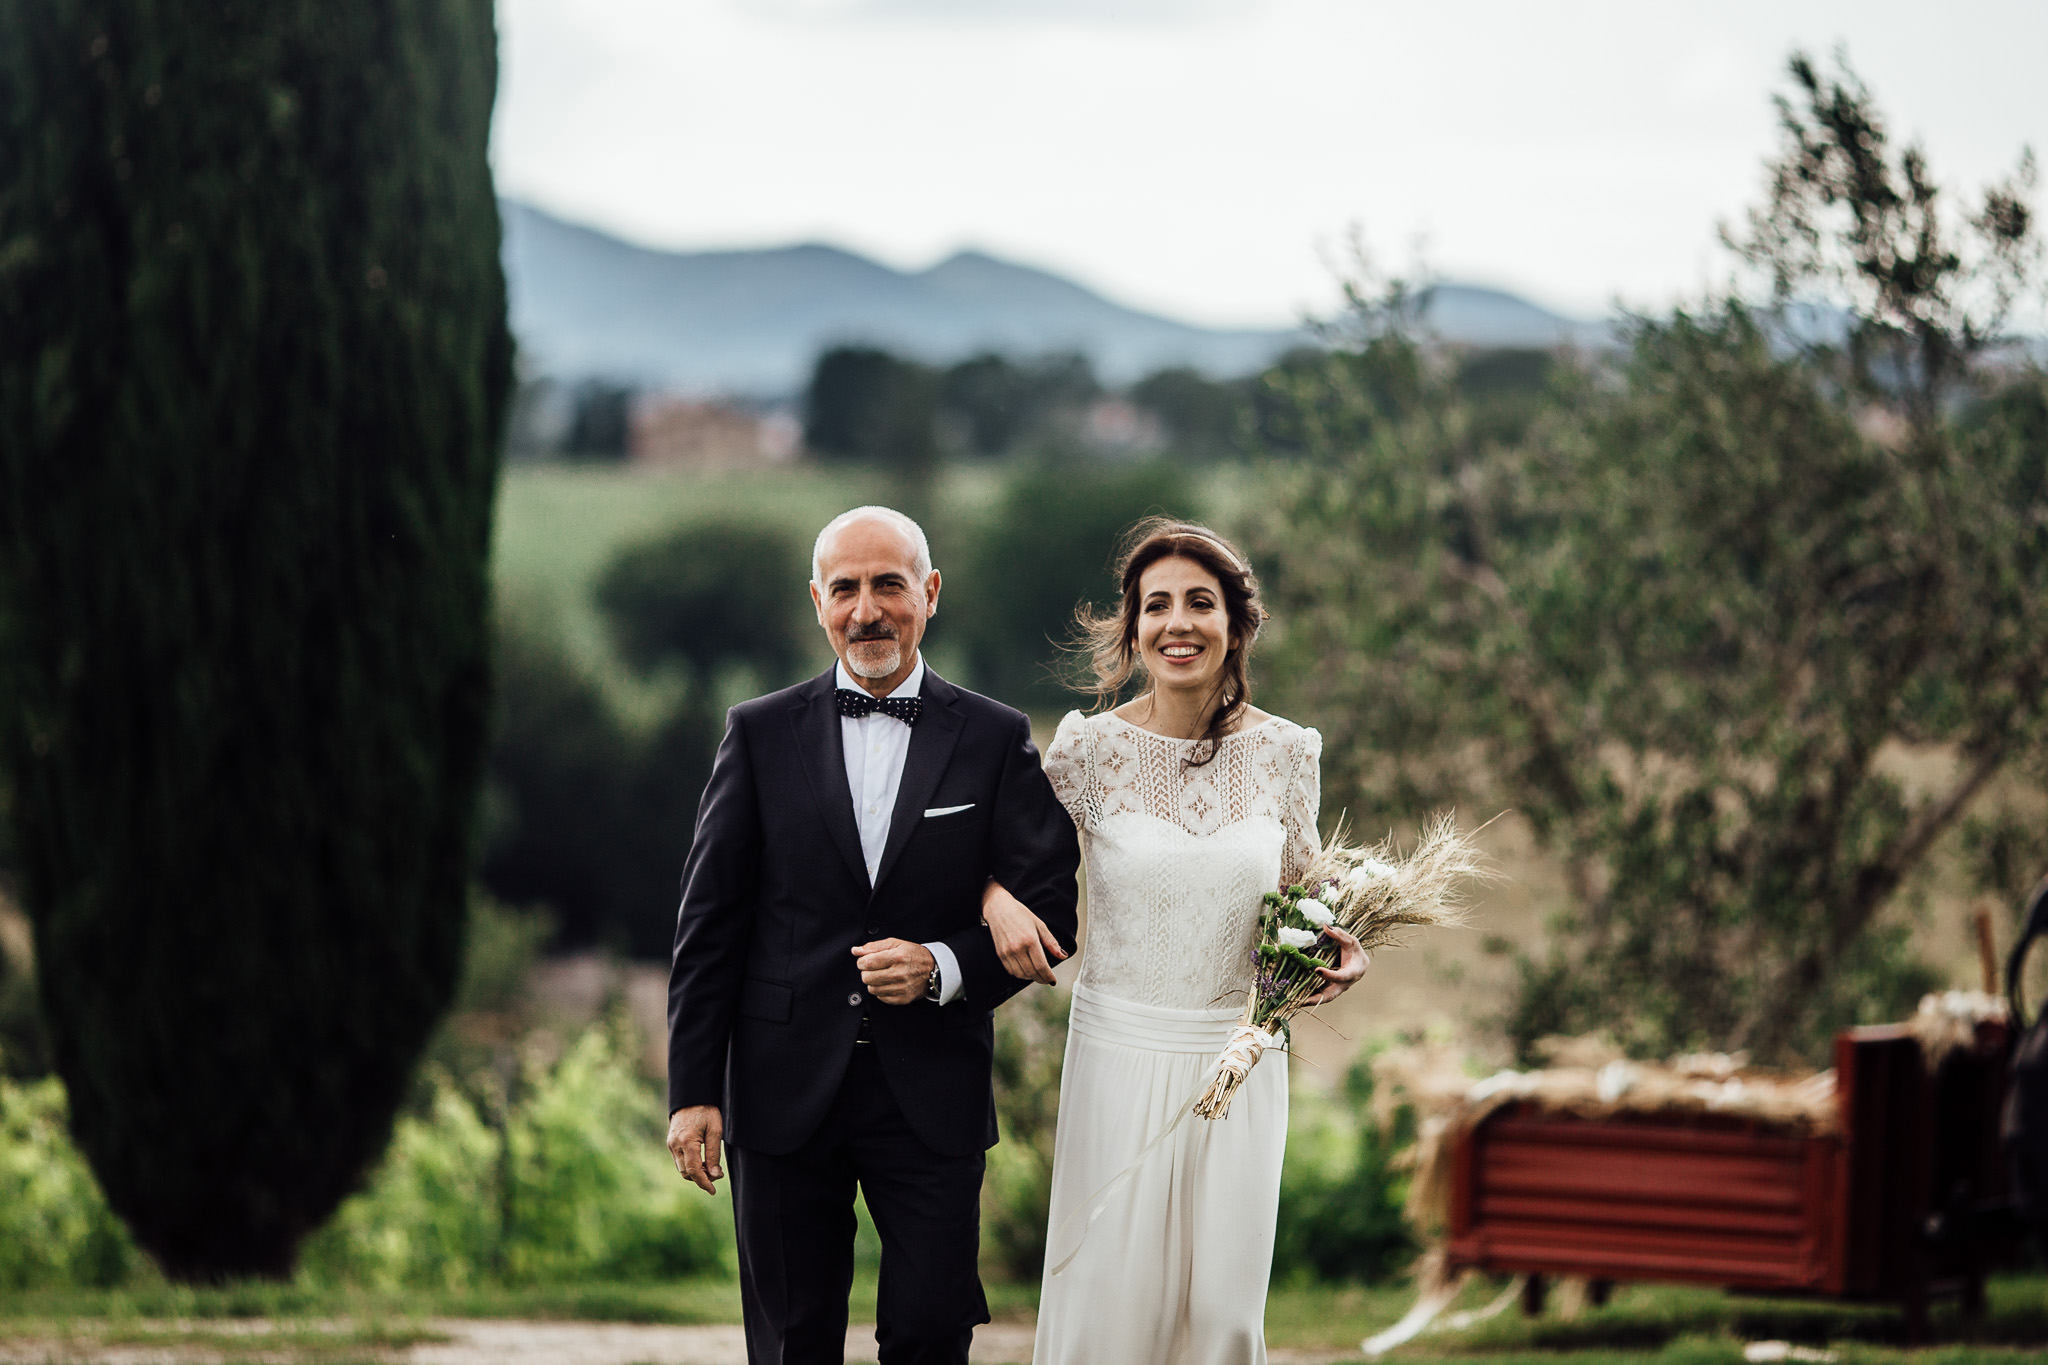 destination wedding in italy inspiration